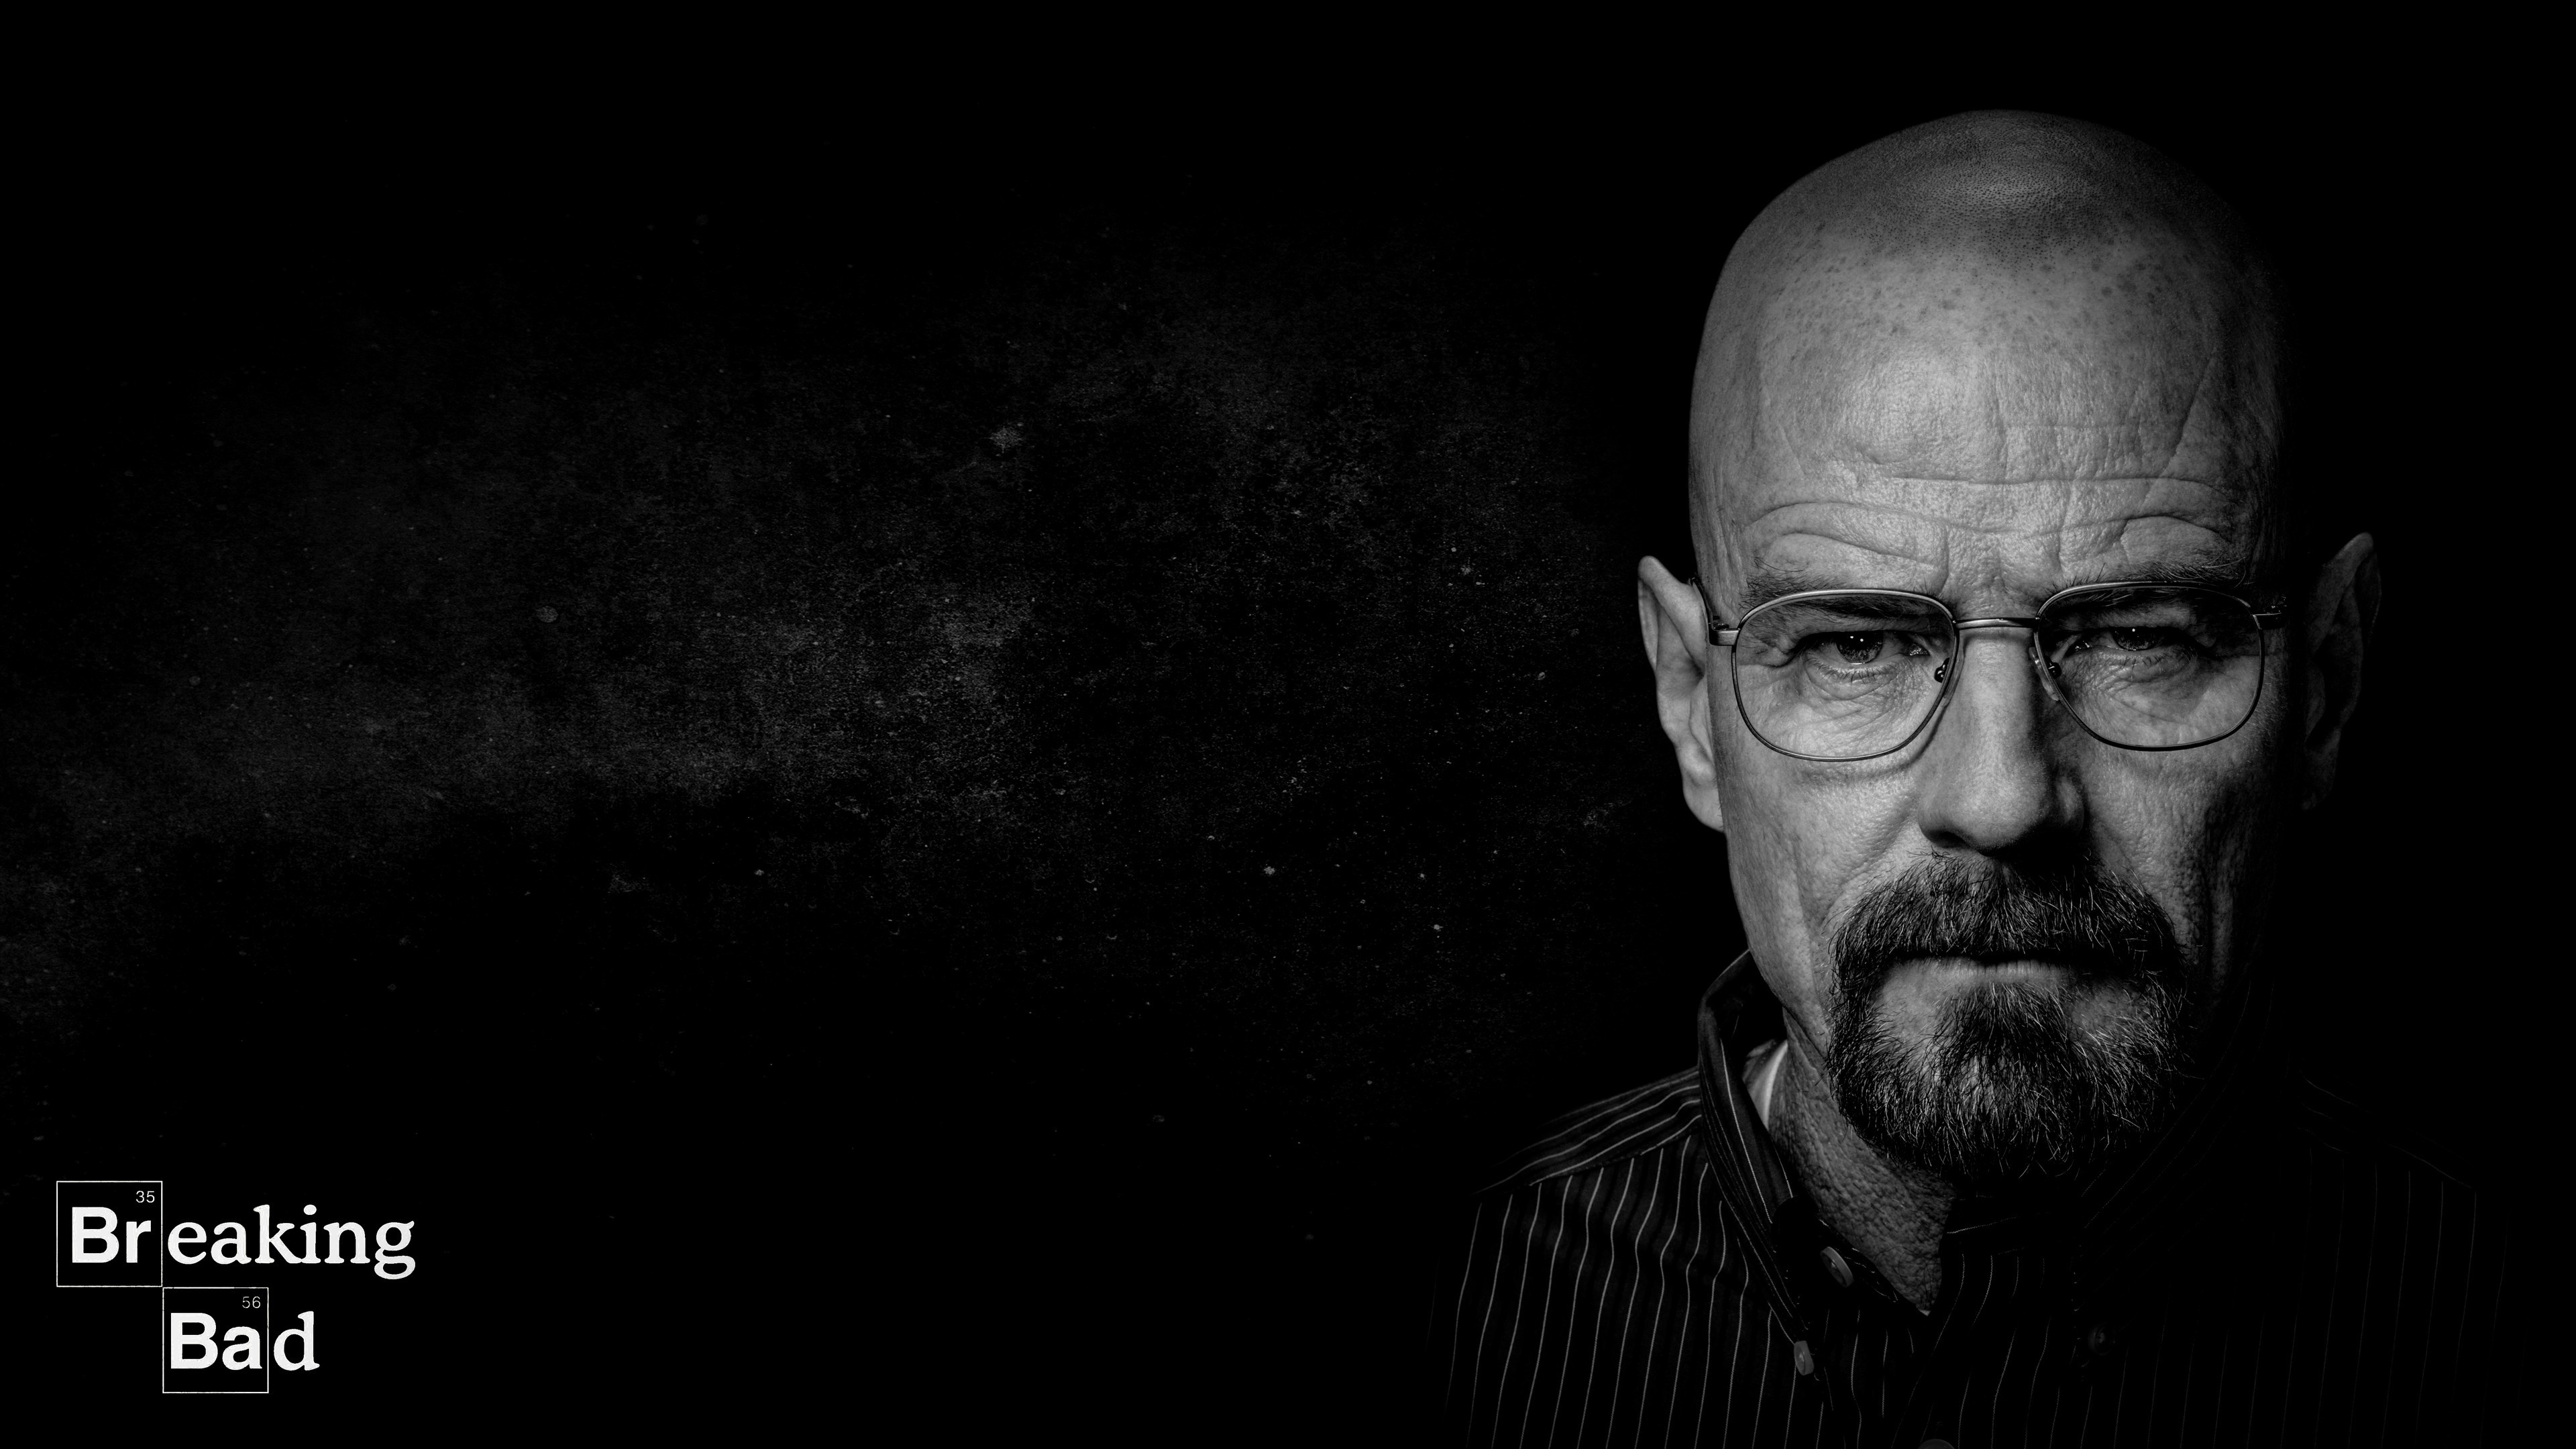 3840x2160 Breaking Bad, Walter White, Bryan Cranston Wallpapers HD / Desktop and  Mobile Backgrounds